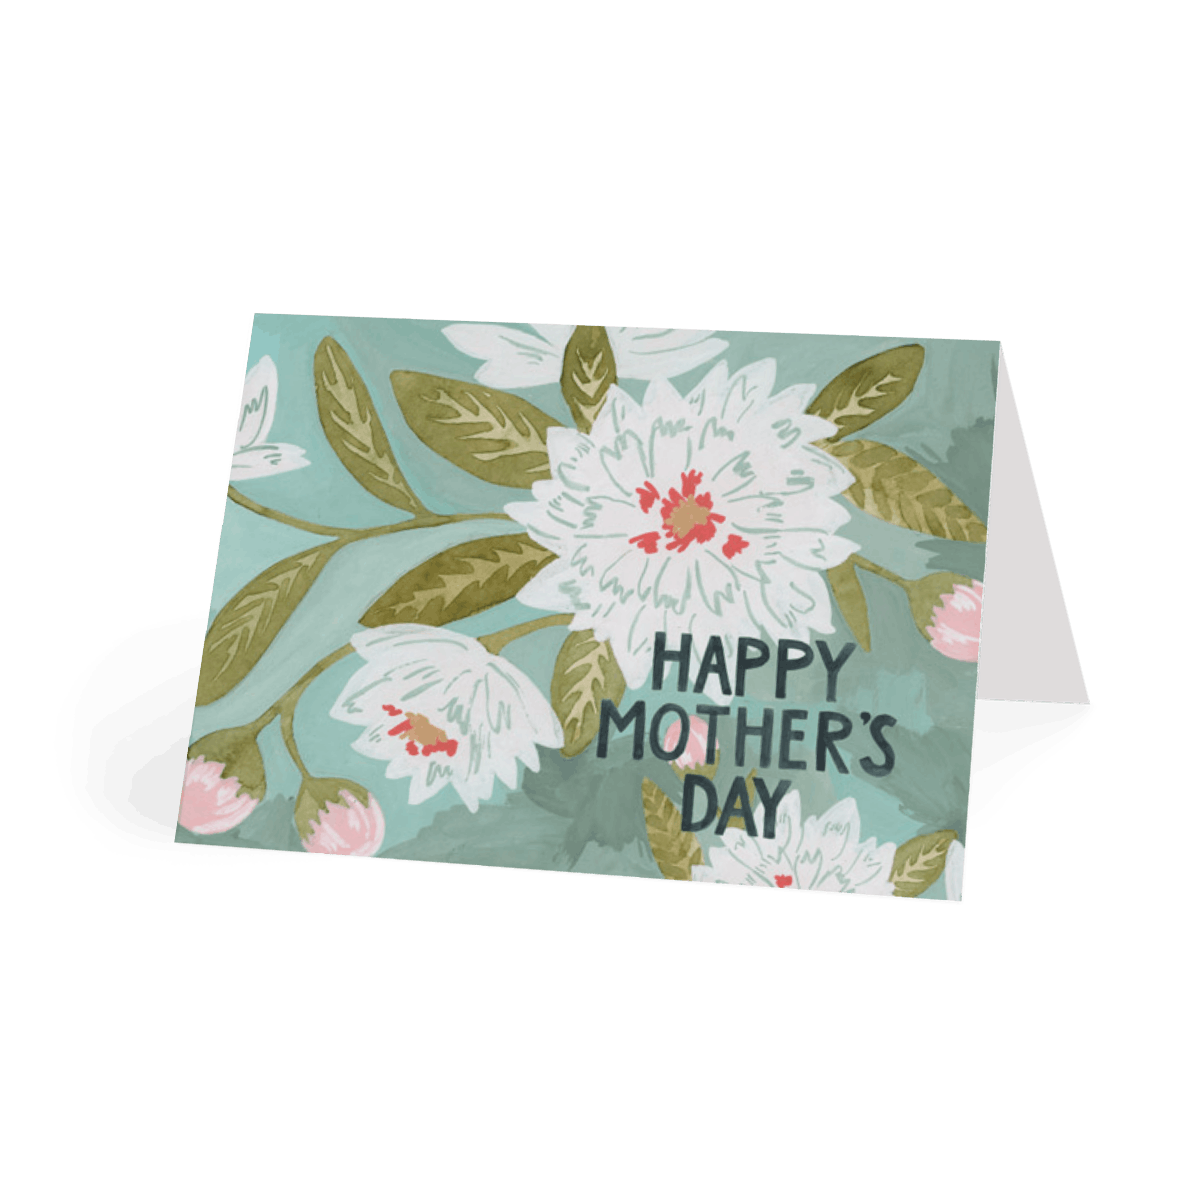 Https%3a%2f%2fwww.papier.com%2fproduct image%2f4438%2f14%2fmother s day bouquet 1162 front 1455100187.png?ixlib=rb 1.1